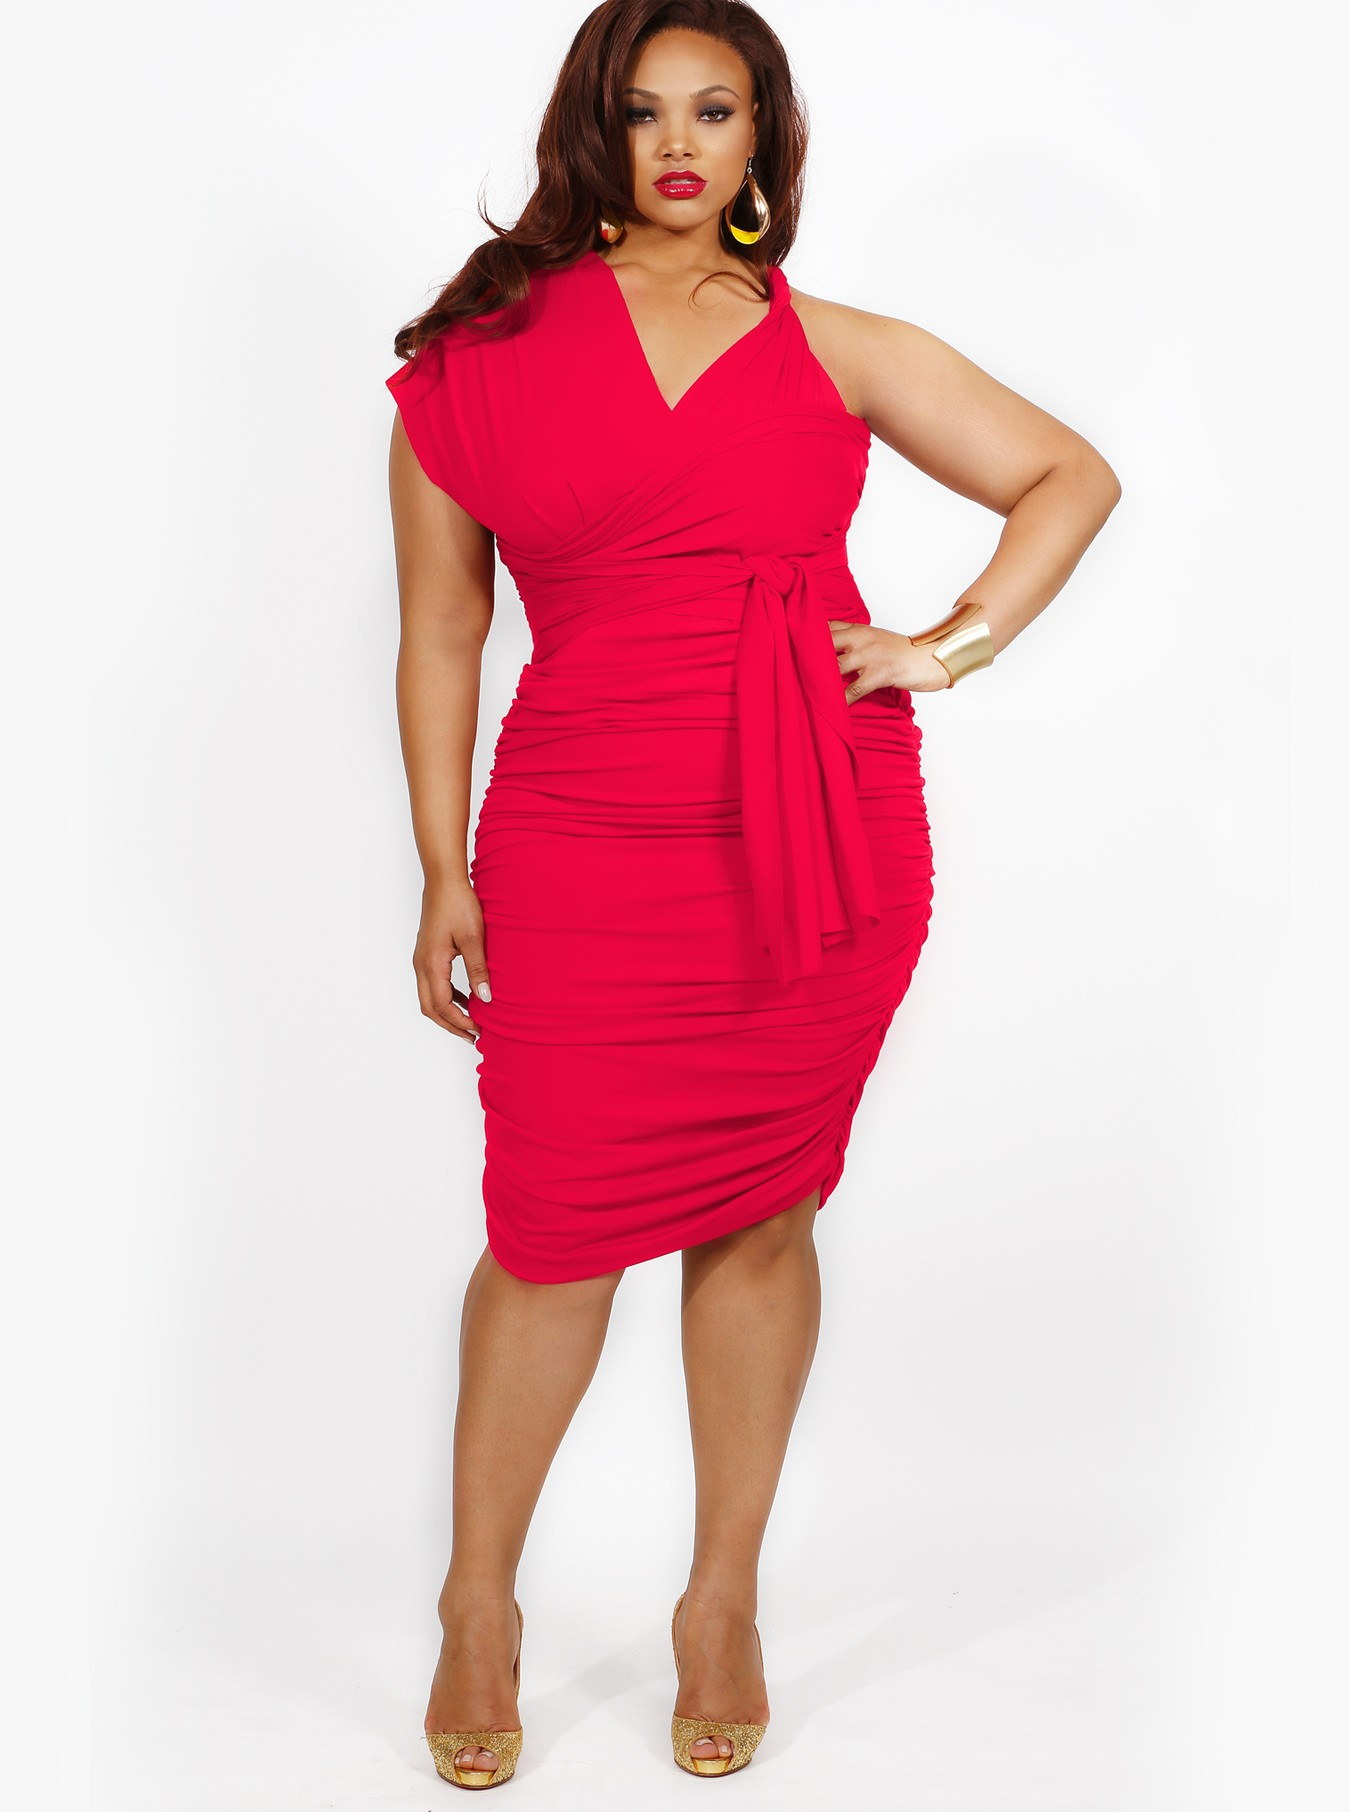 Plus Size Red Dress VS Little Black Dress – Carey Fashion